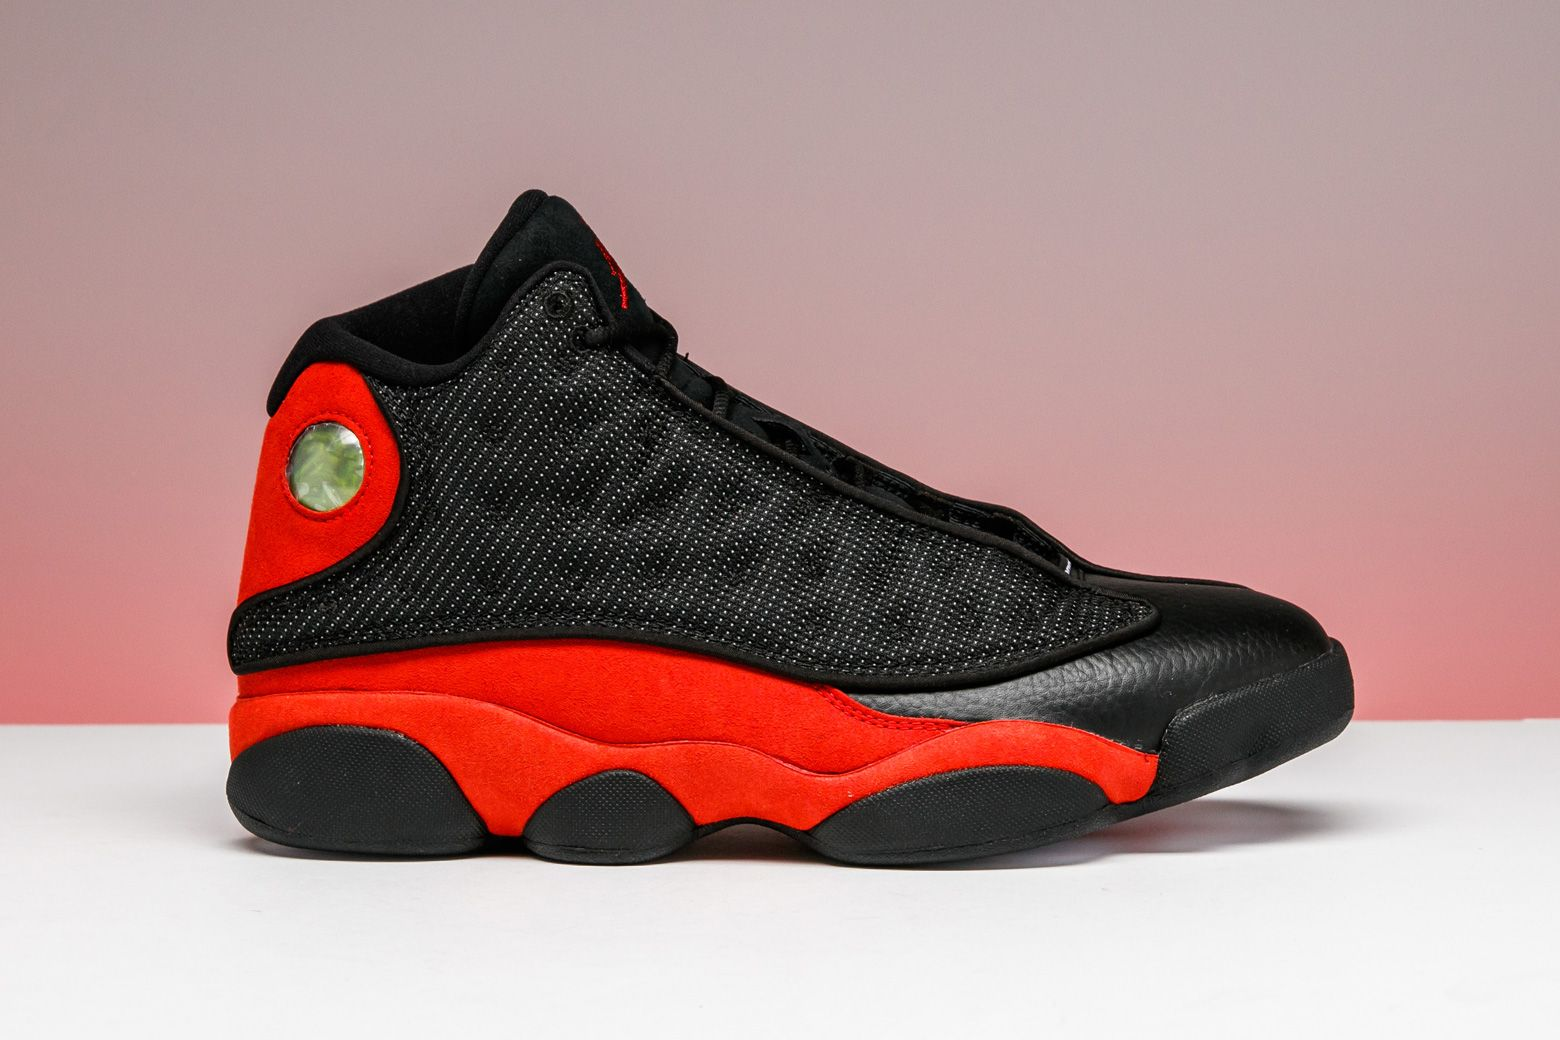 28fe3c9bd8cfc0 SG EARLY ACCESS  The 2017 Air Jordan 13